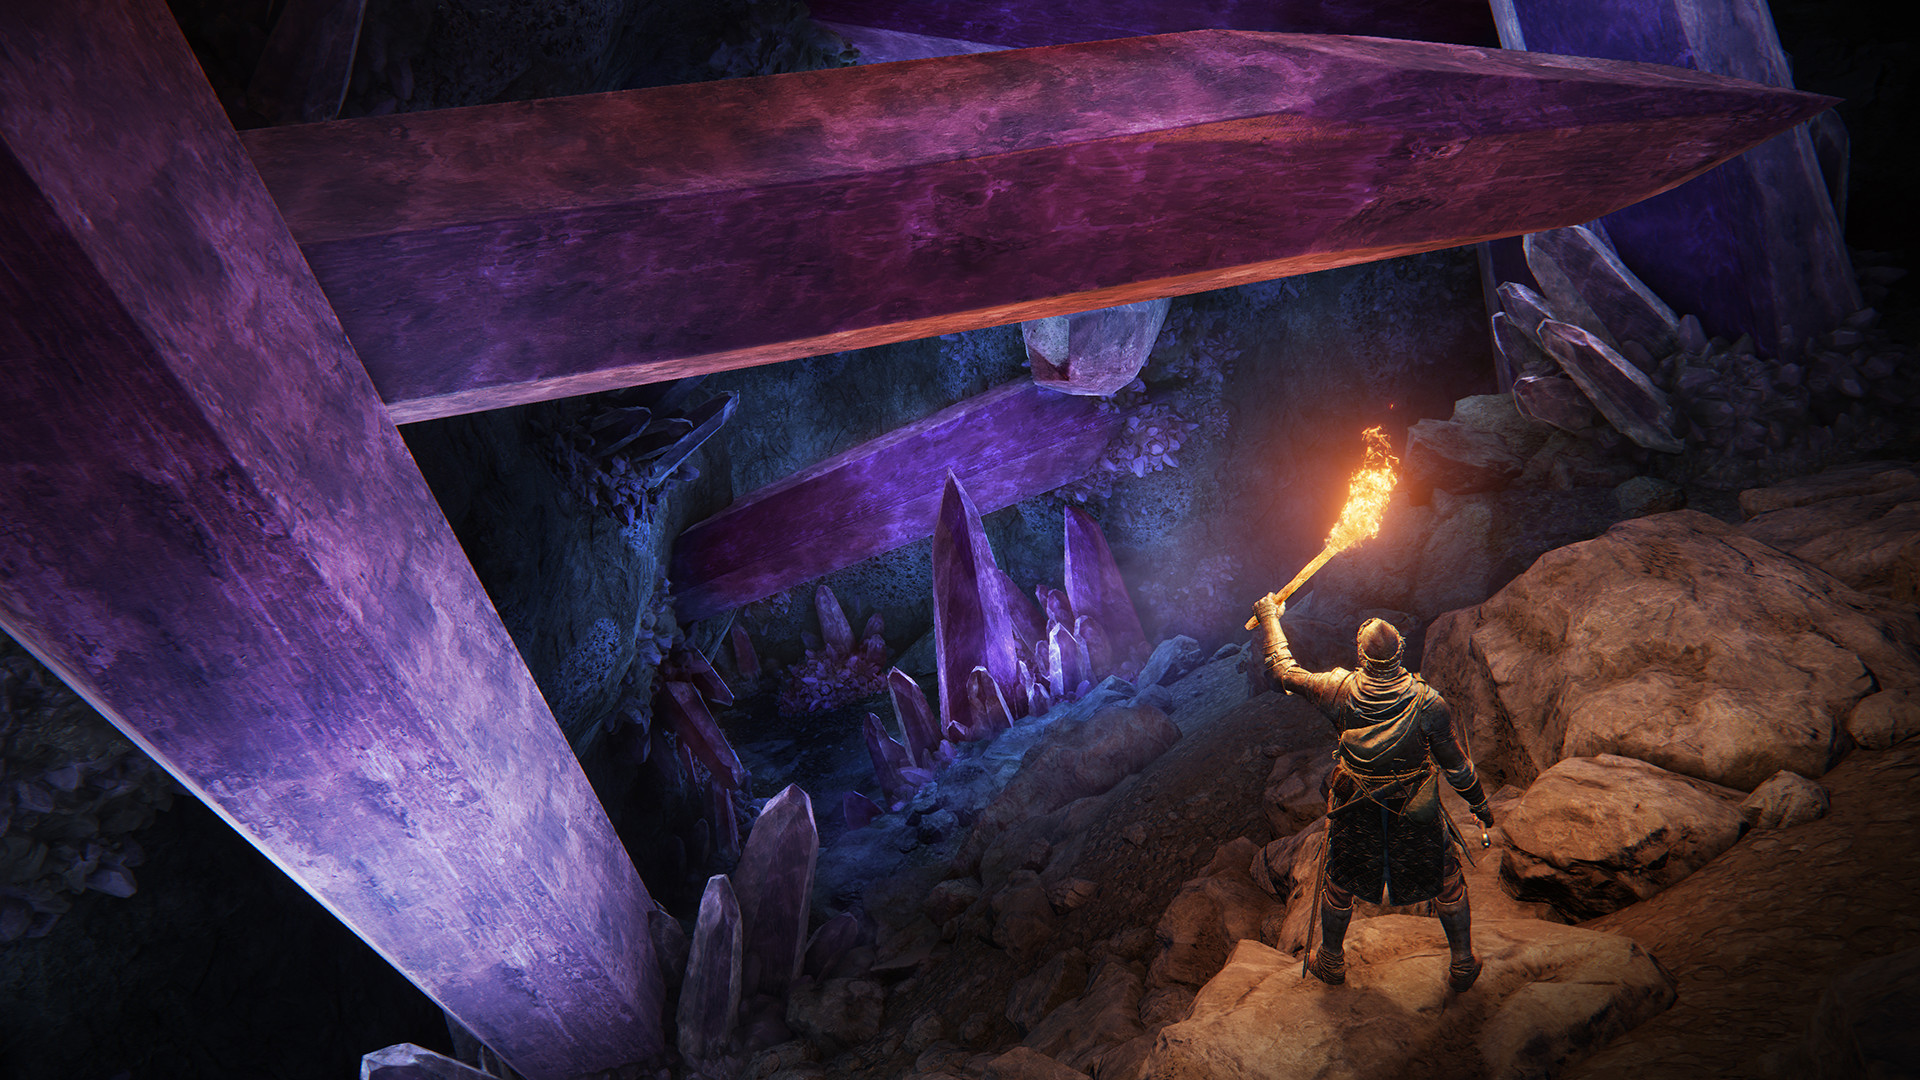 Elden Ring has a Steam page